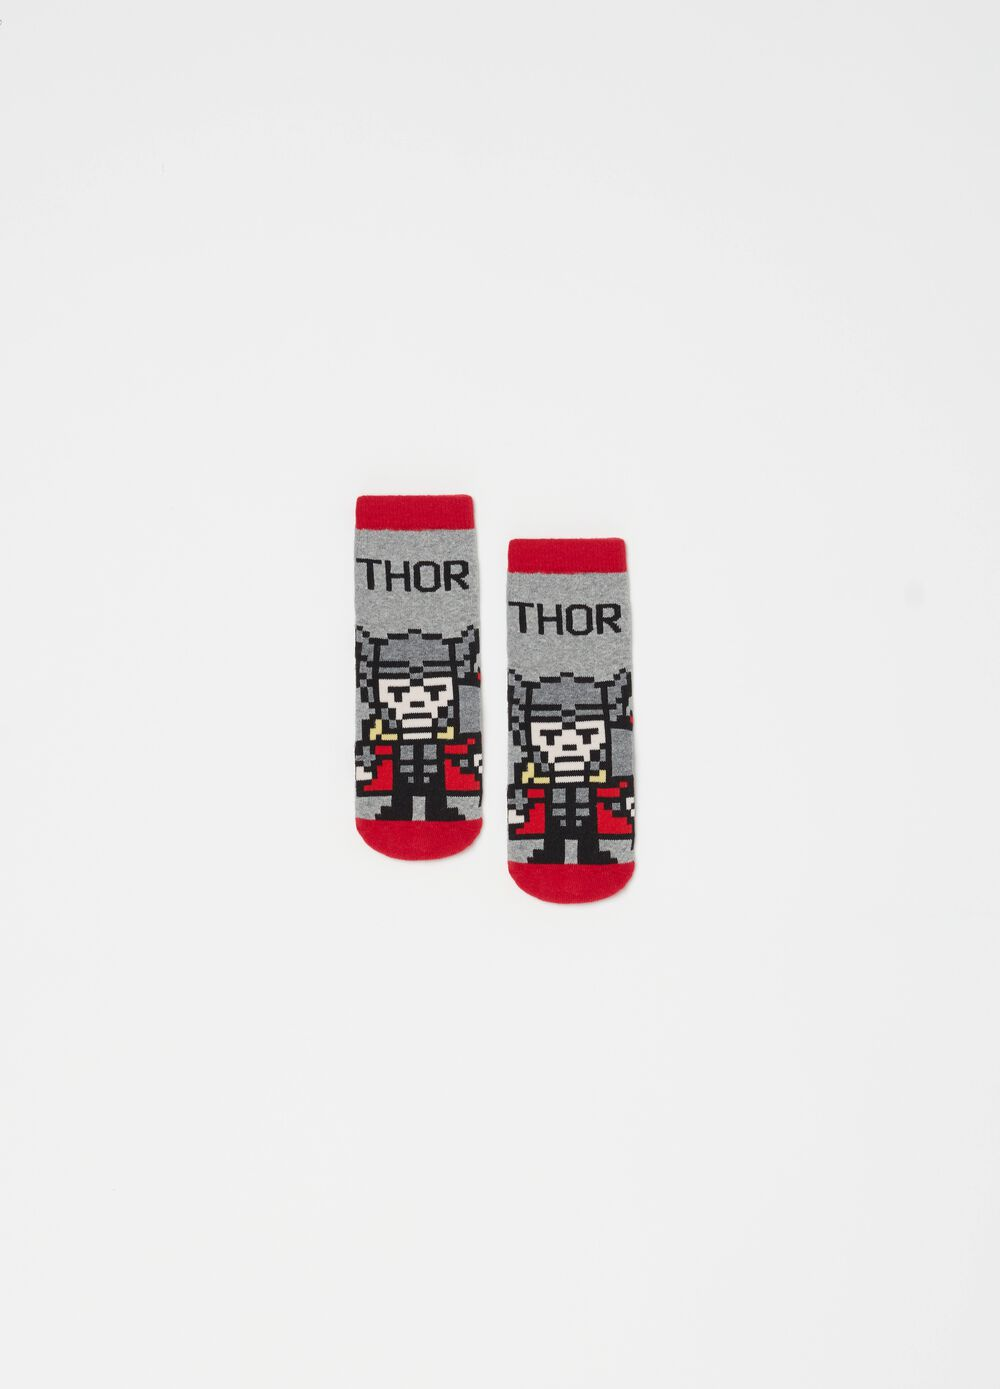 Stretch Avengers socks